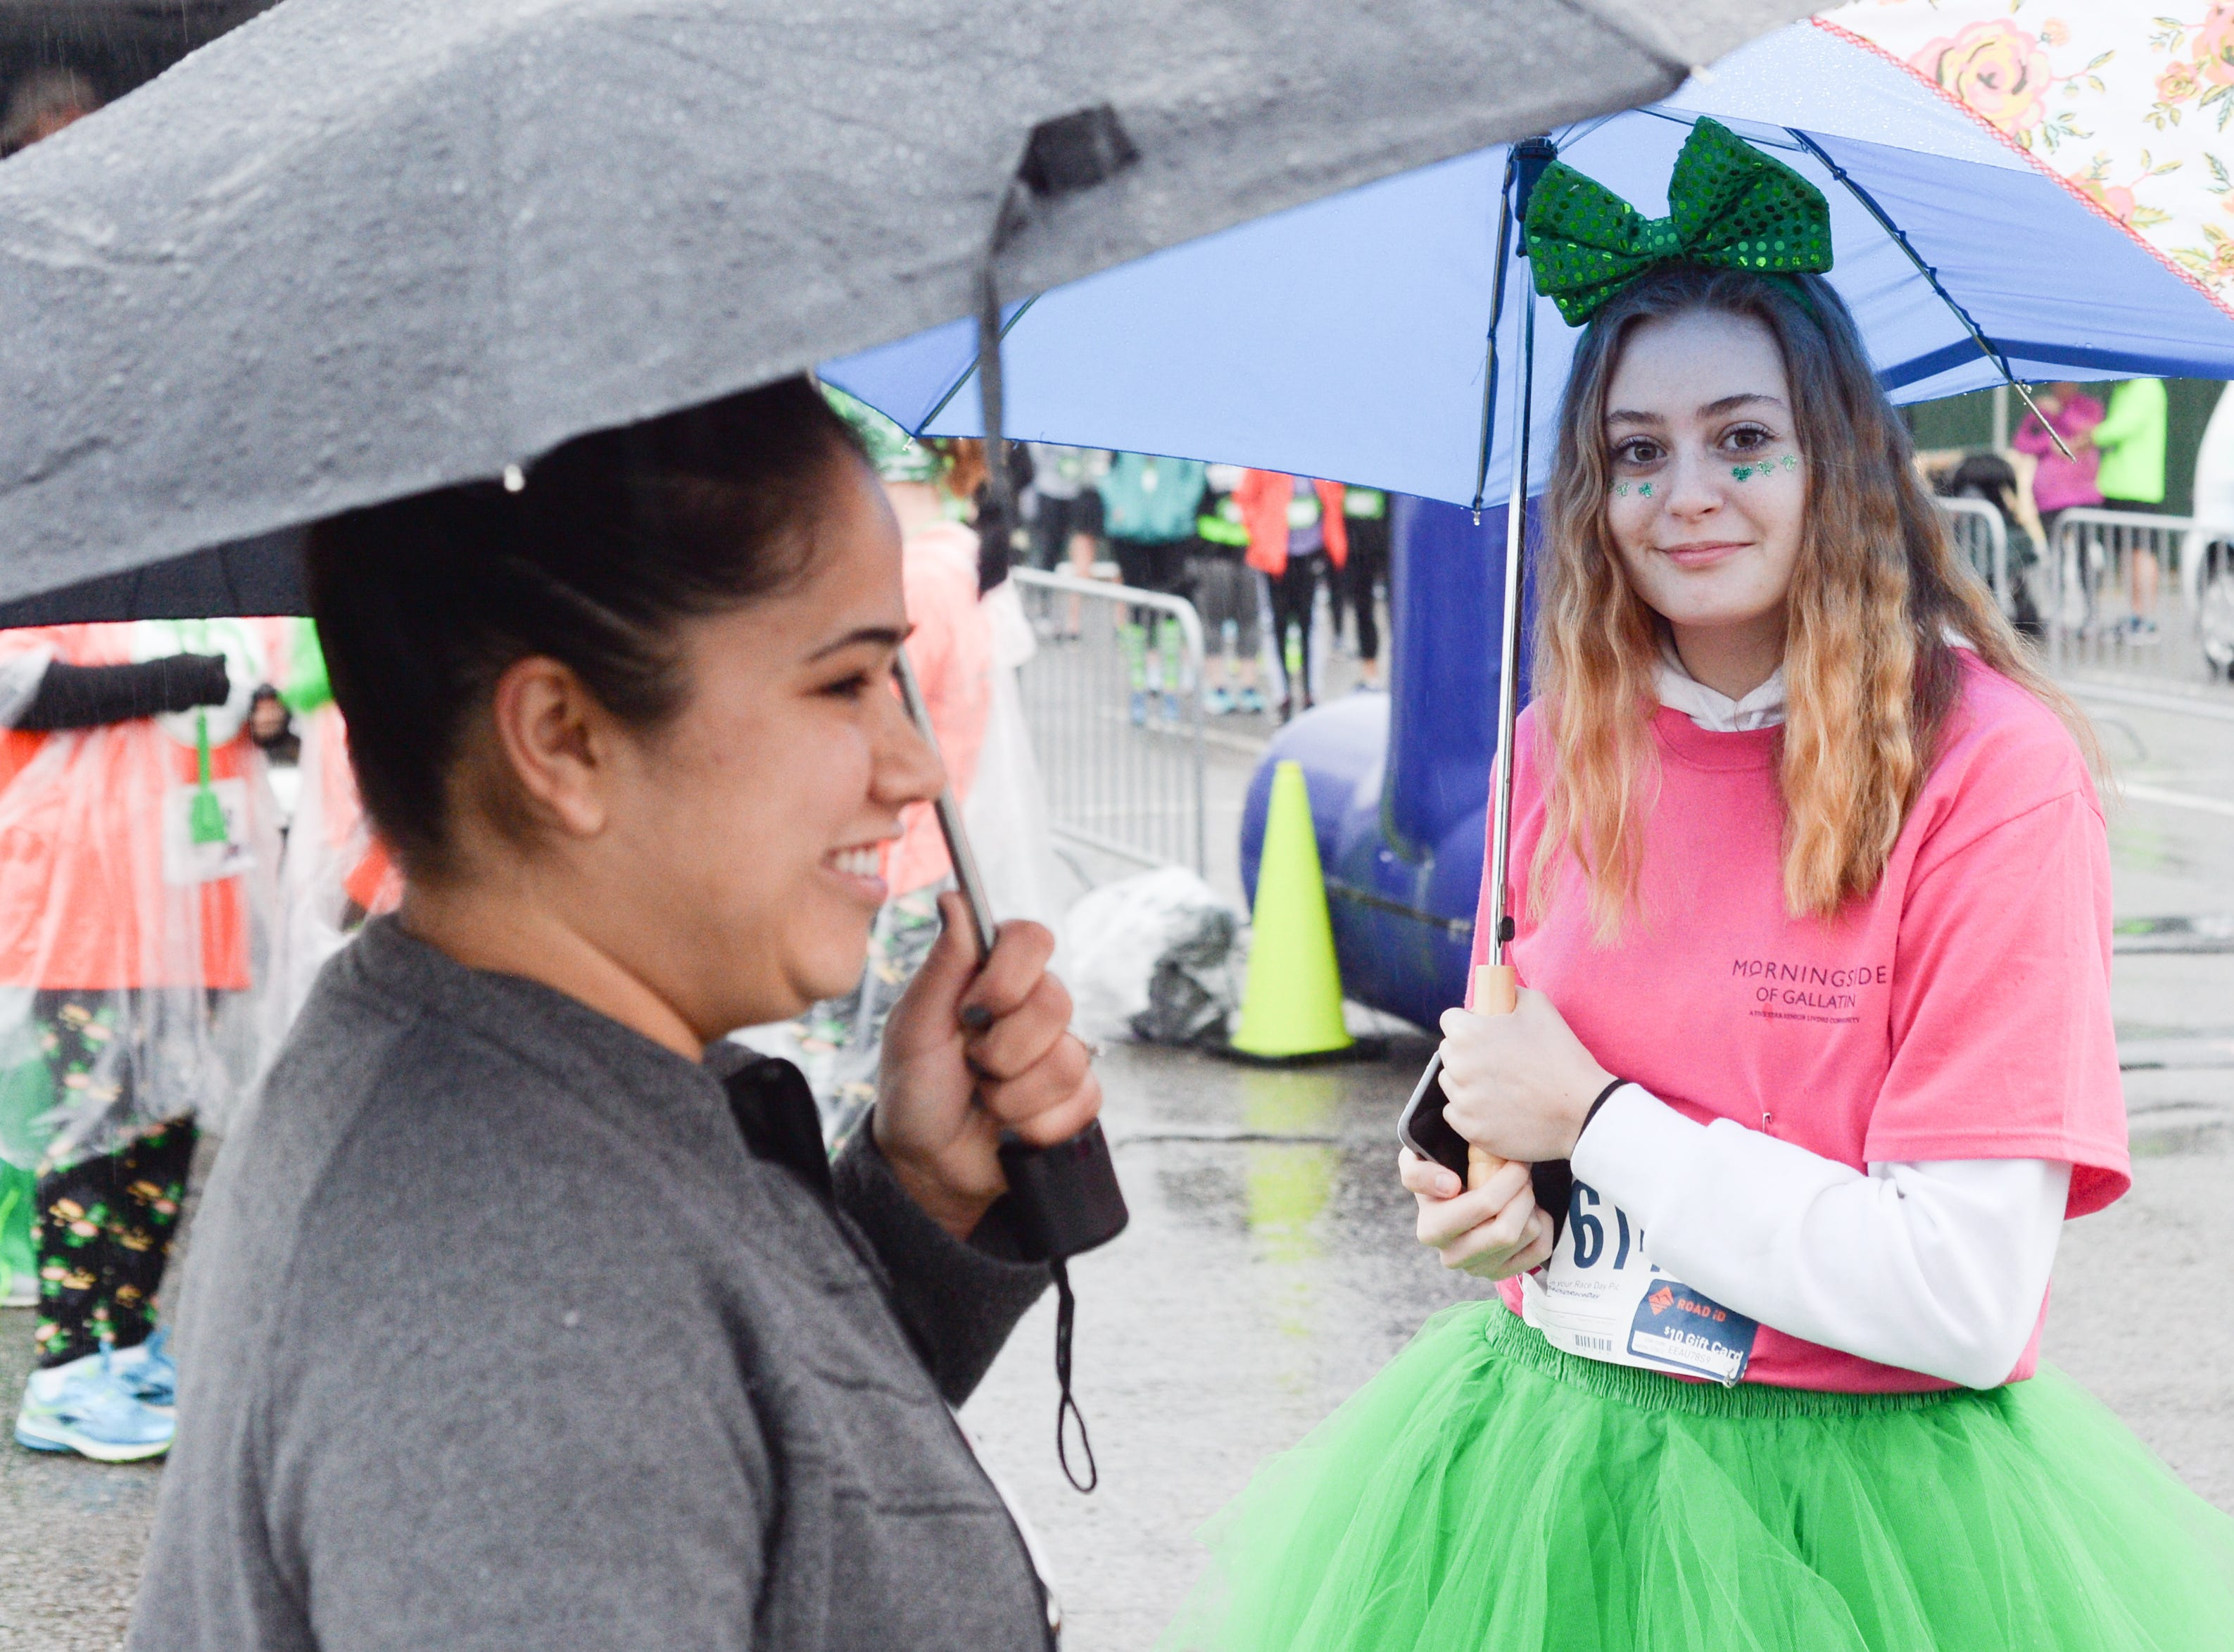 Participants braved the elements to participate in the Gallatin Shamrock Run on Saturday, March 9.